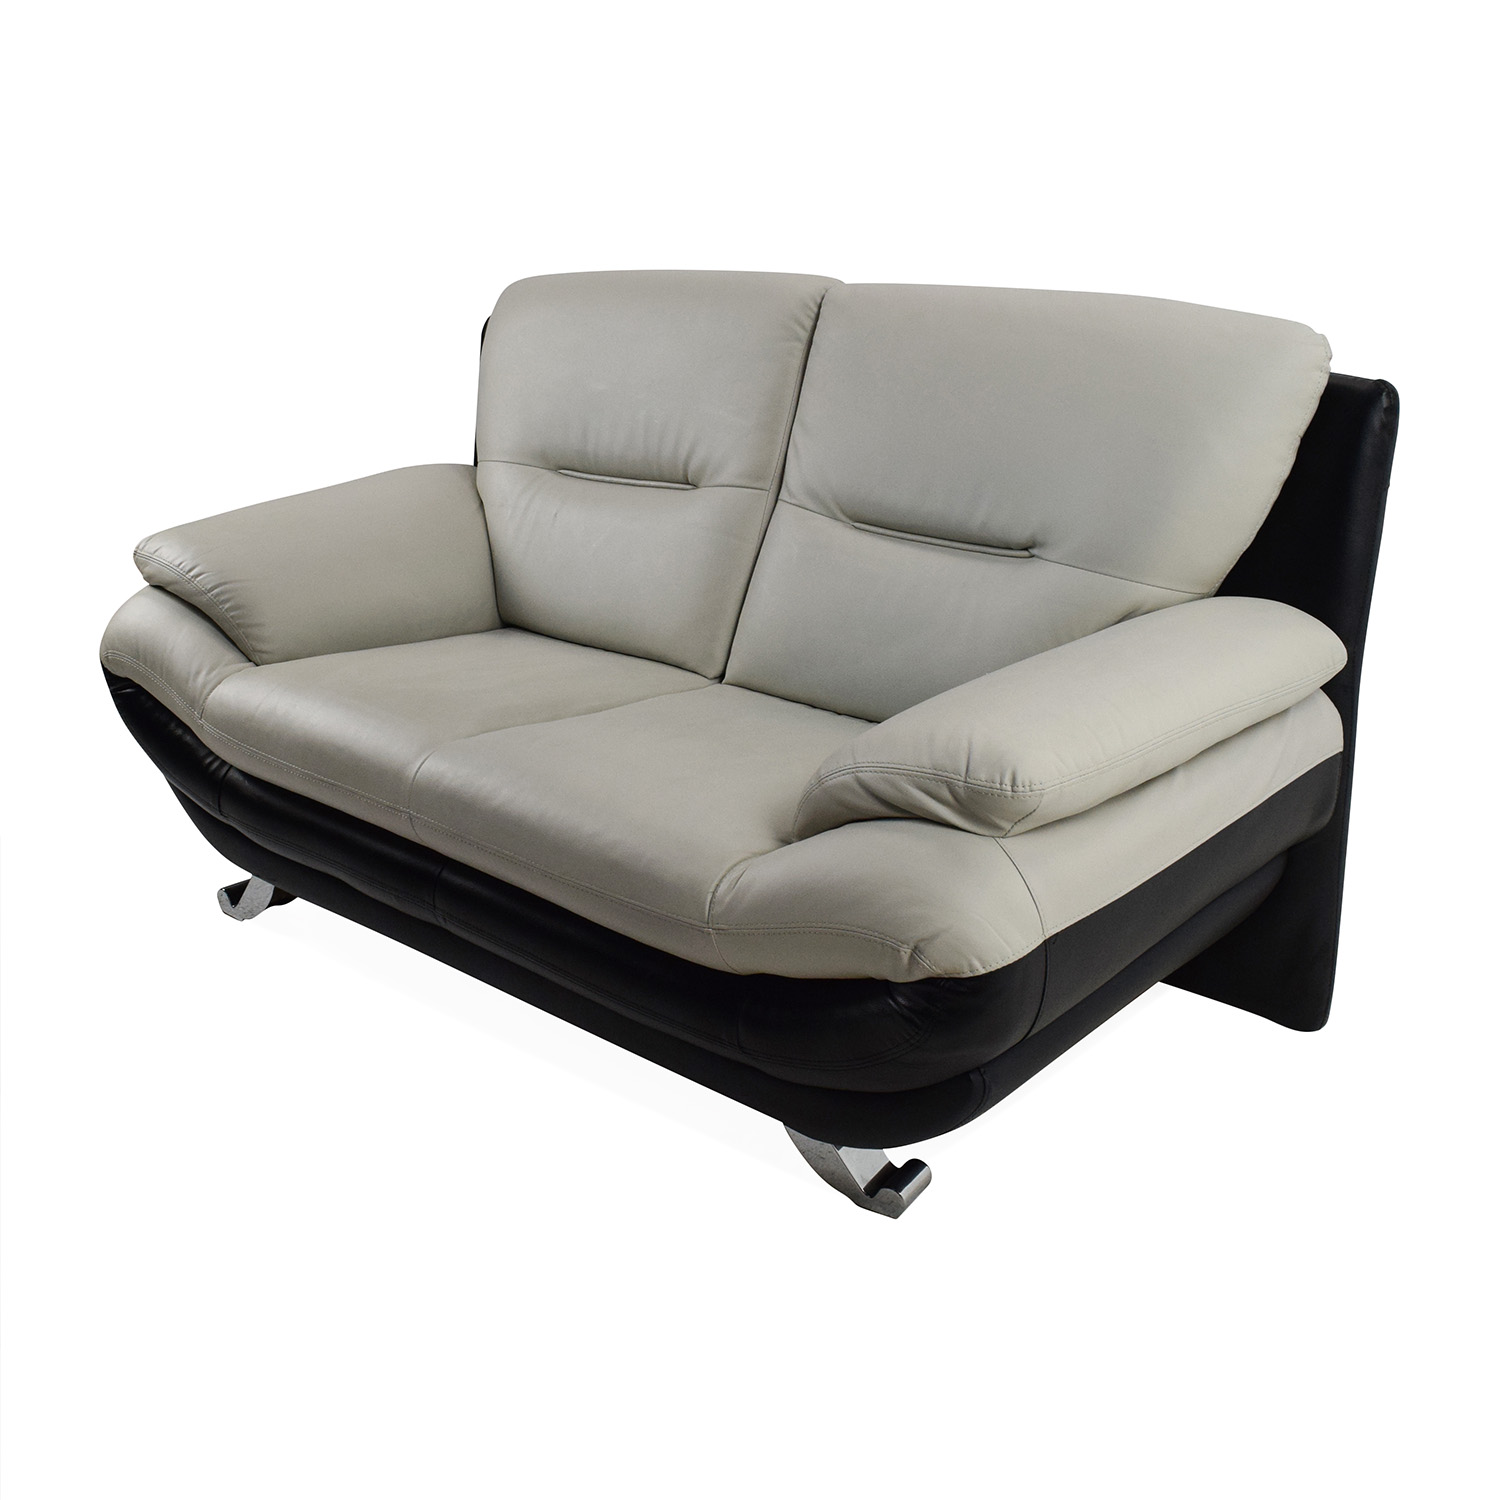 62% OFF Modern Leather 2 Seater Couch Sofas